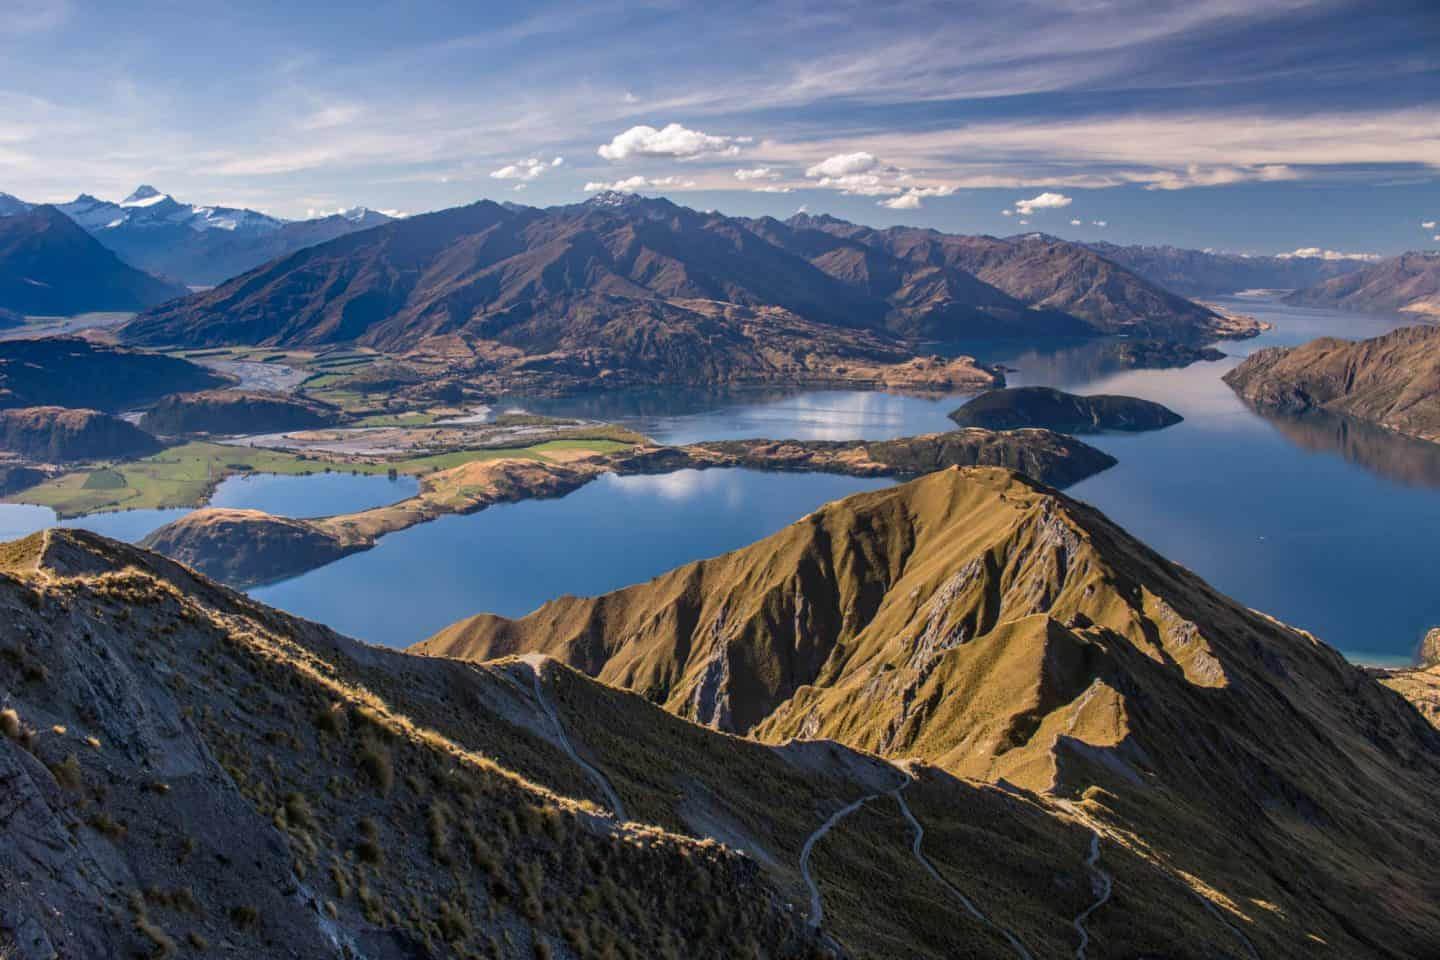 The views of Lake Wanaka and Mt Aspiring are beautiful any time of day.